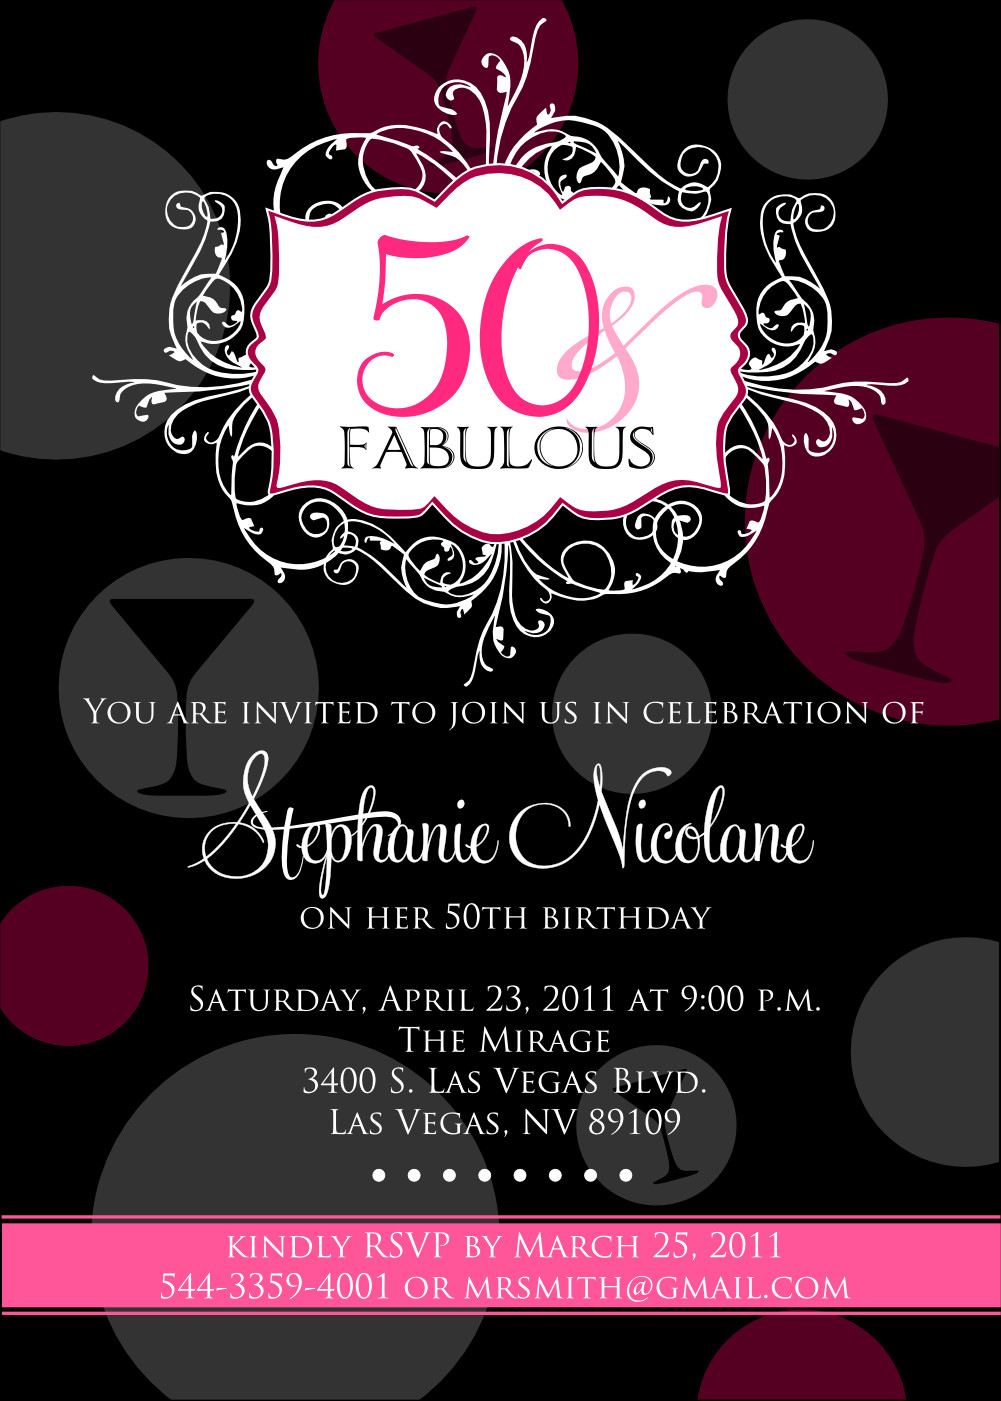 50th Birthday Invitations For Her  FREE Printable 50th Birthday Invitations for Women